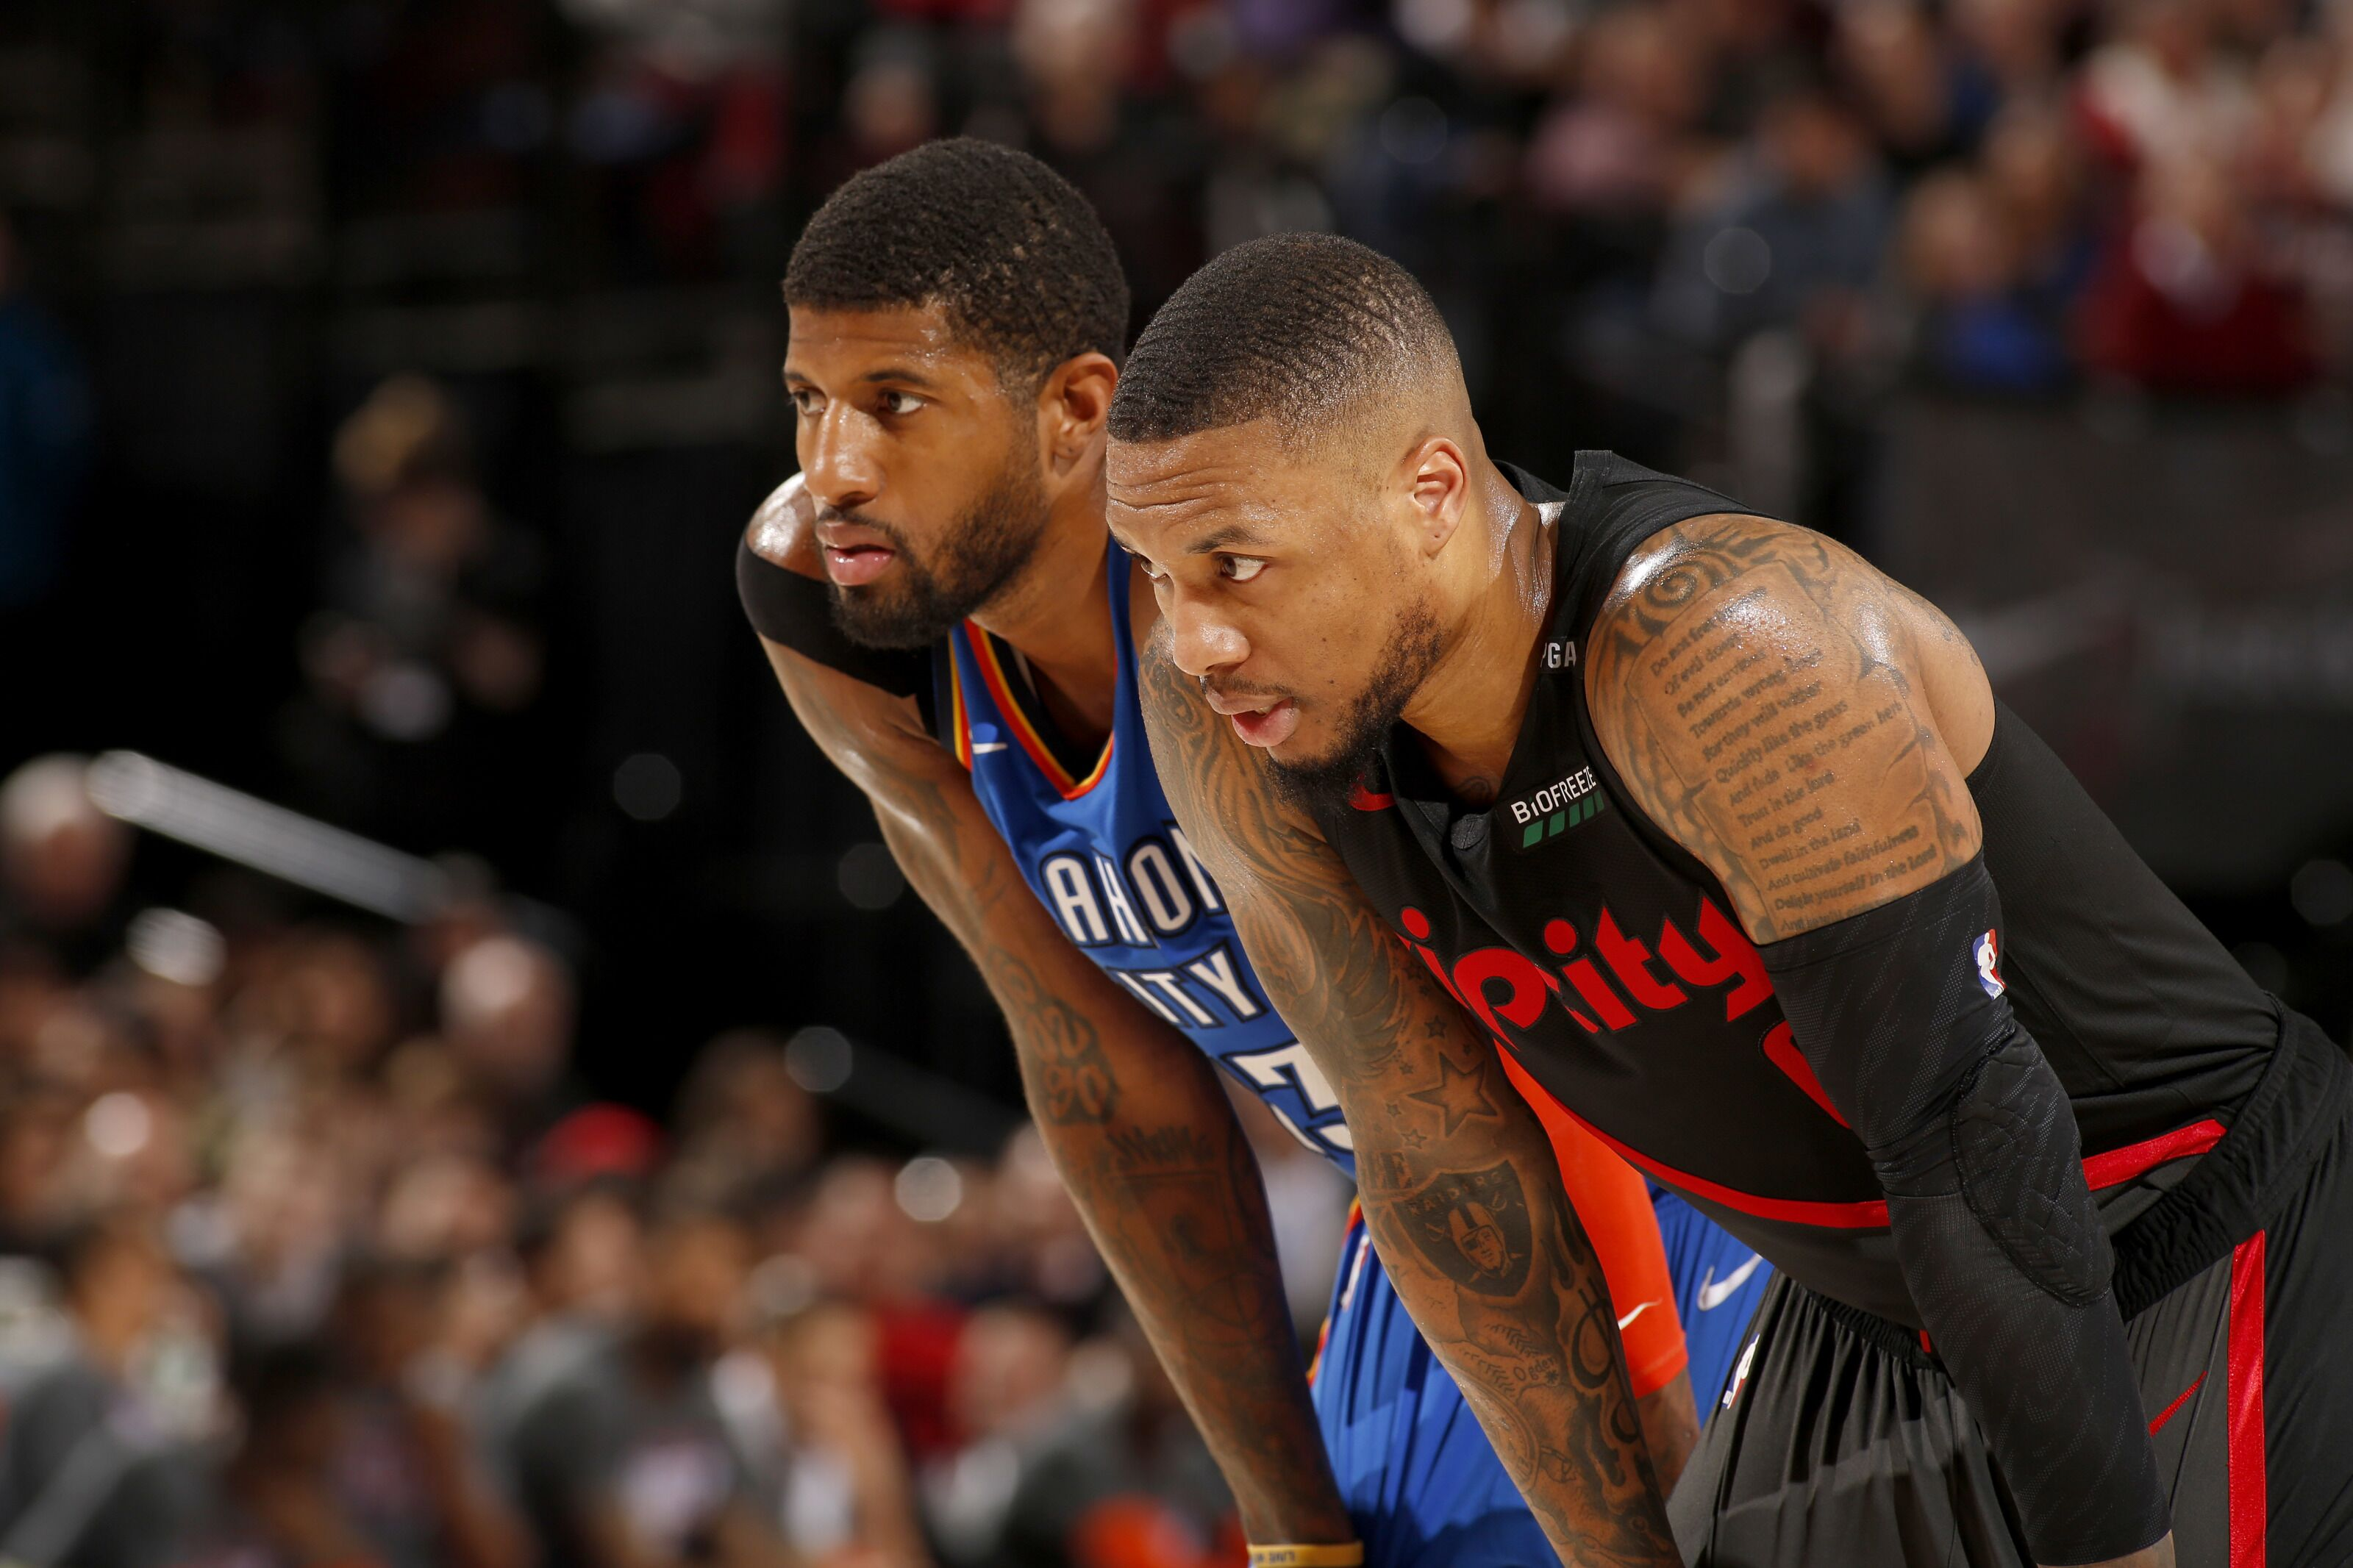 PORTLAND, OR - MARCH 7: Paul George #13 of the Oklahoma City Thunder and Damian Lillard #0 of the Portland Trail Blazers look on during the game on March 7, 2019 at the Moda Center Arena in Portland, Oregon. NOTE TO USER: User expressly acknowledges and agrees that, by downloading and or using this photograph, user is consenting to the terms and conditions of the Getty Images License Agreement. Mandatory Copyright Notice: Copyright 2019 NBAE (Photo by Cameron Browne/NBAE via Getty Images)